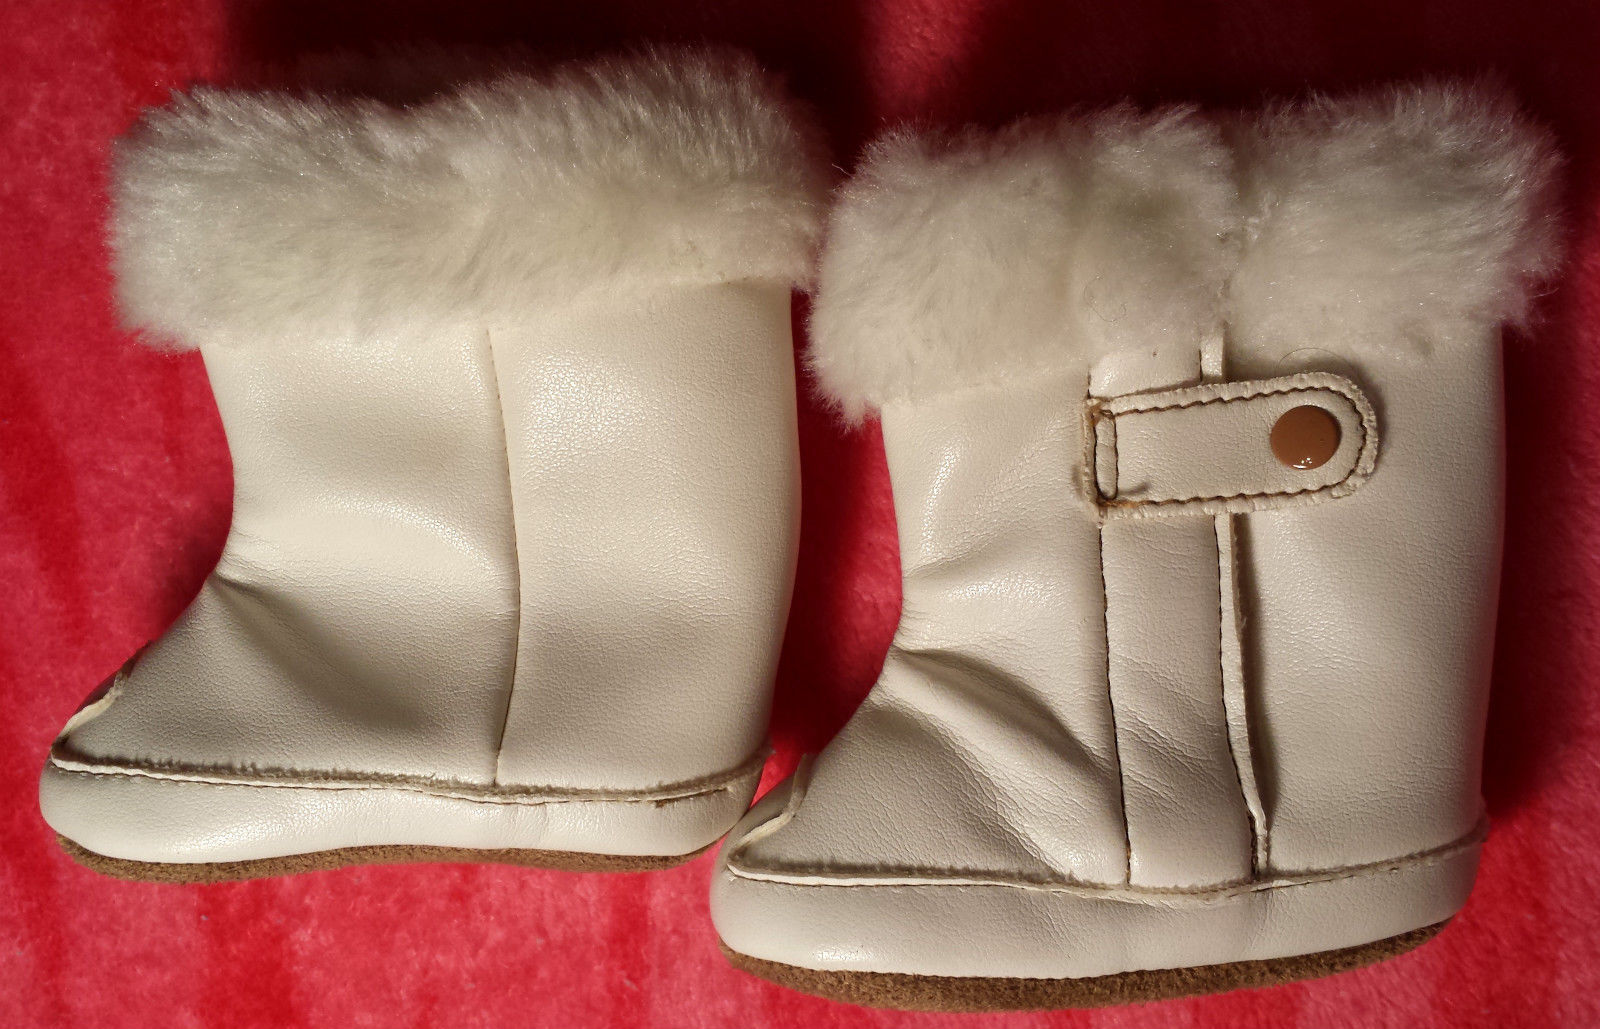 NWOT Girl's Size NB Newborn Off White Faux Leather/ Fur Velcro Infant Crib Boots